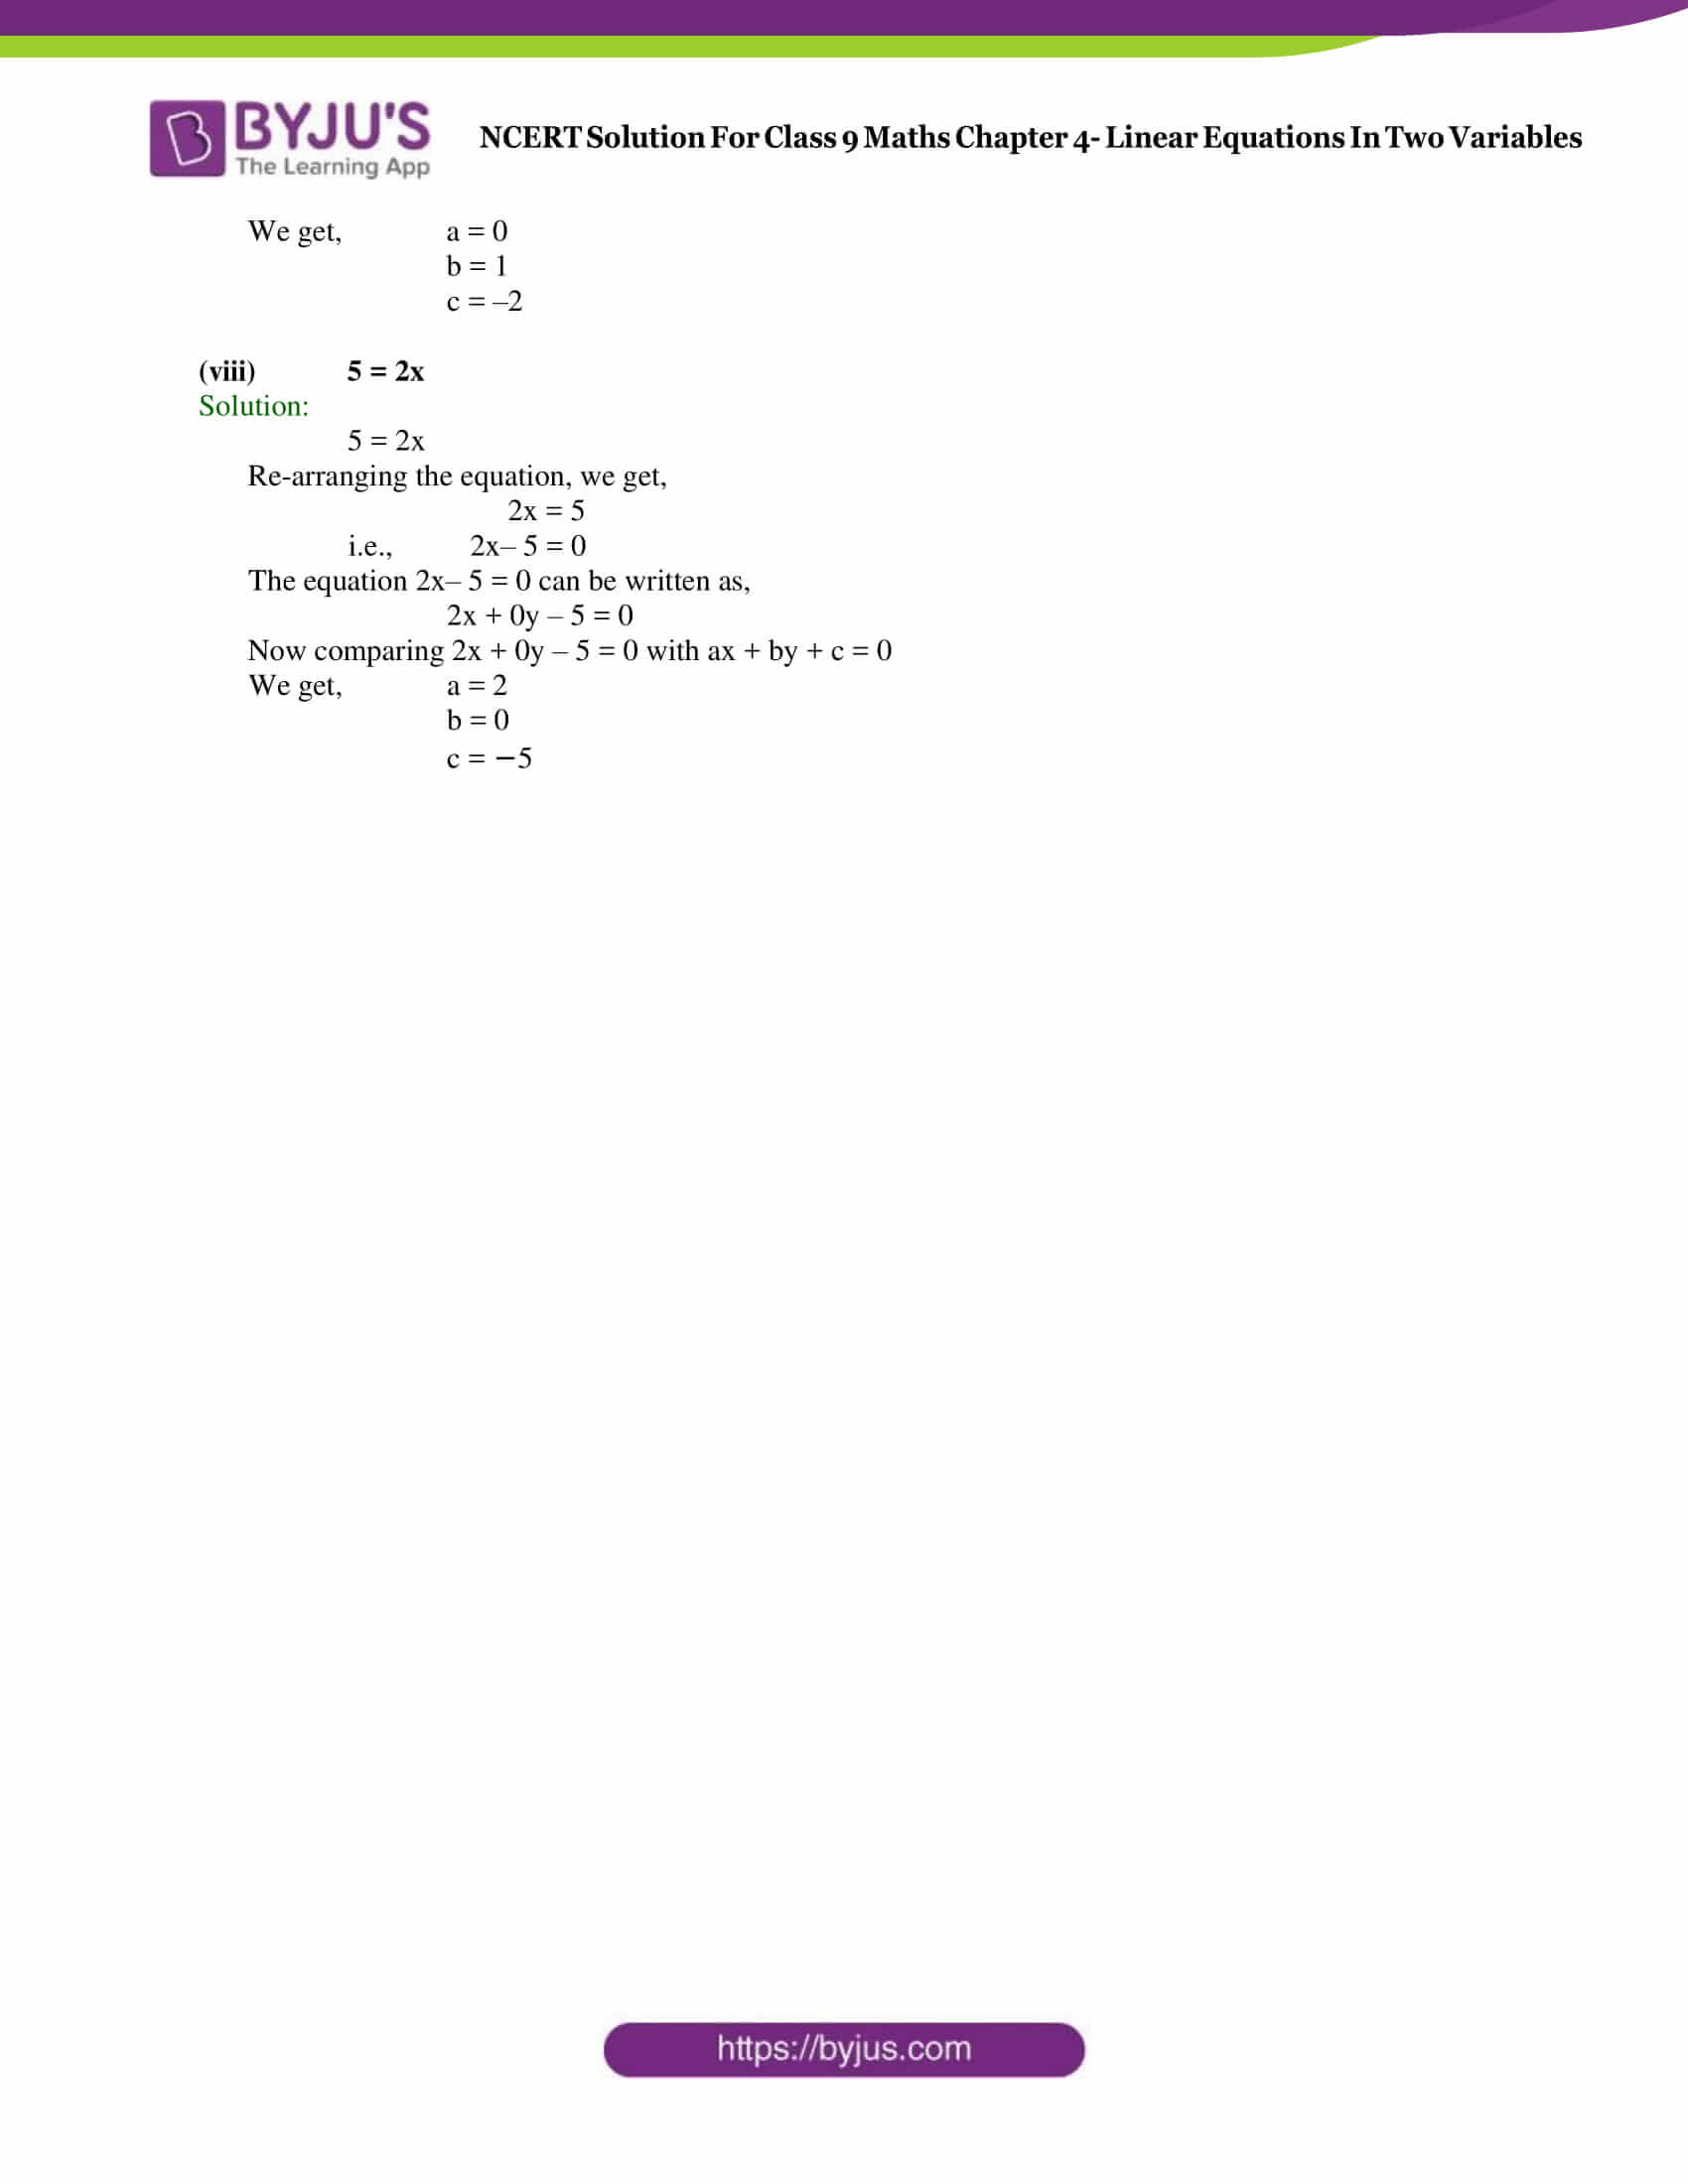 NCERT Solution Class 9 Maths Chapter 4 Linear equations in 2 variables Exercise 4.1 Part 3